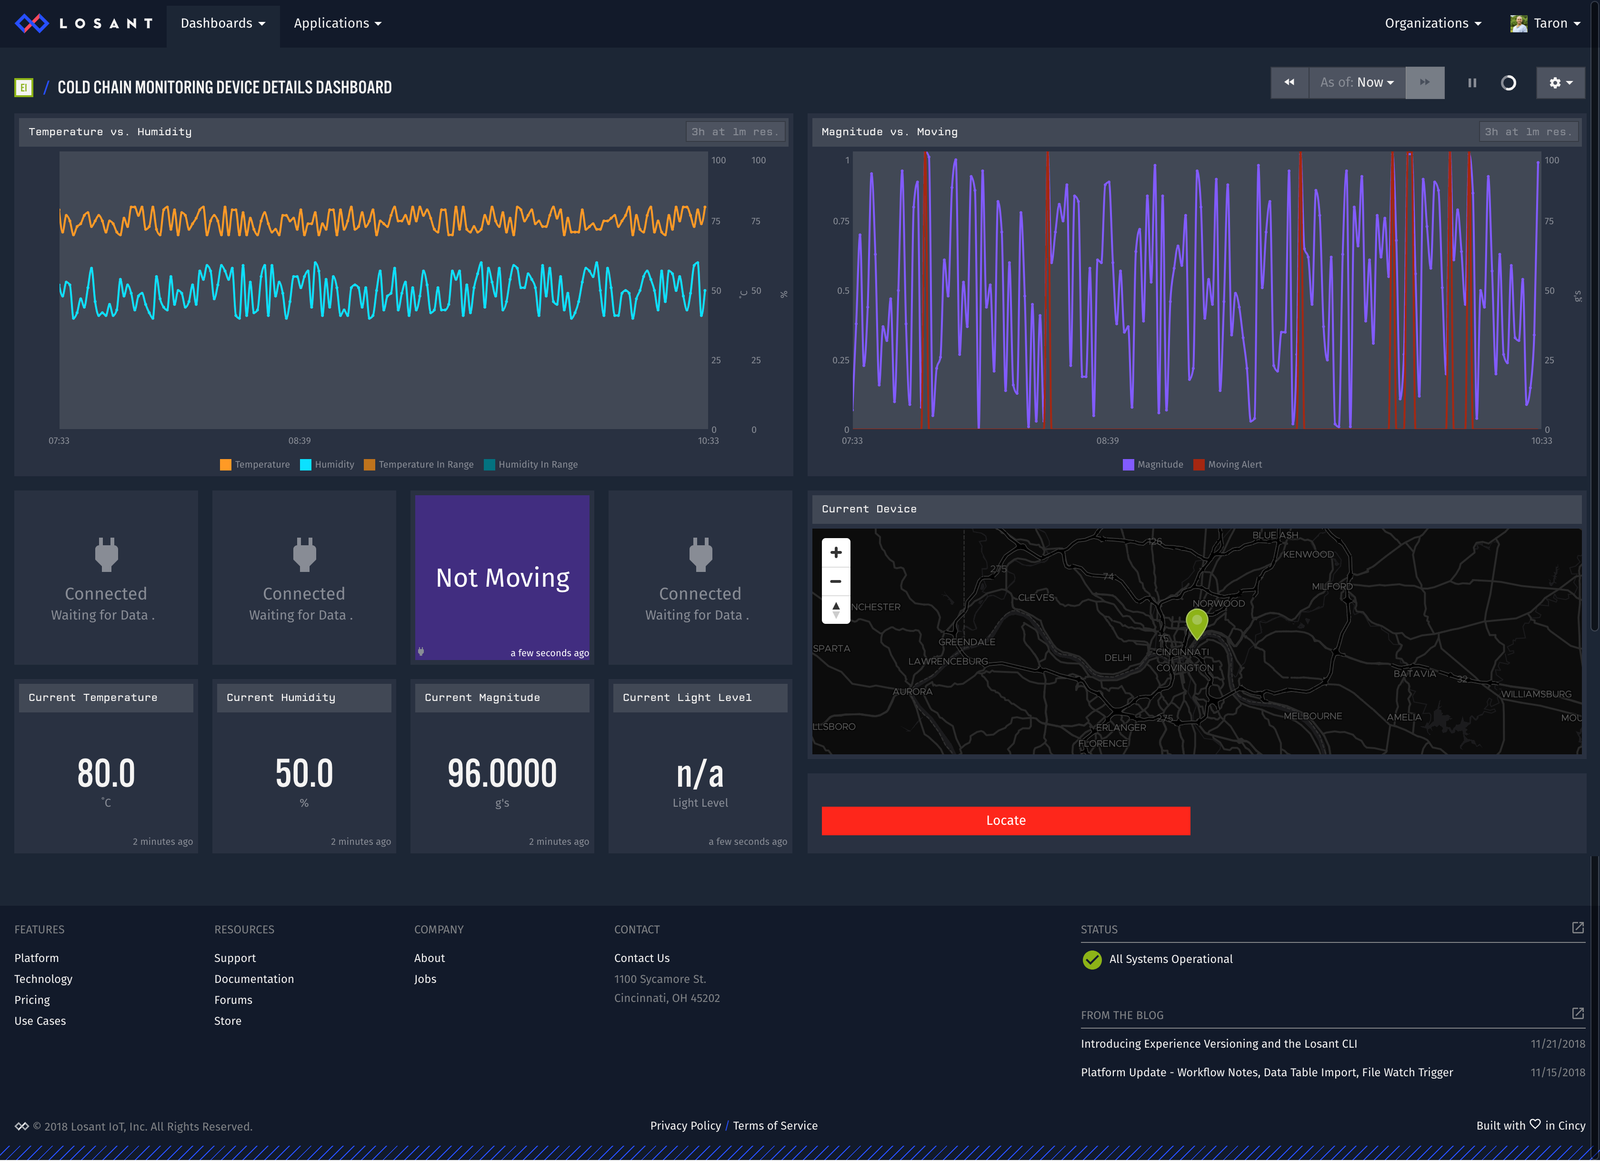 Losant Cold Chain Monitoring Dashboard